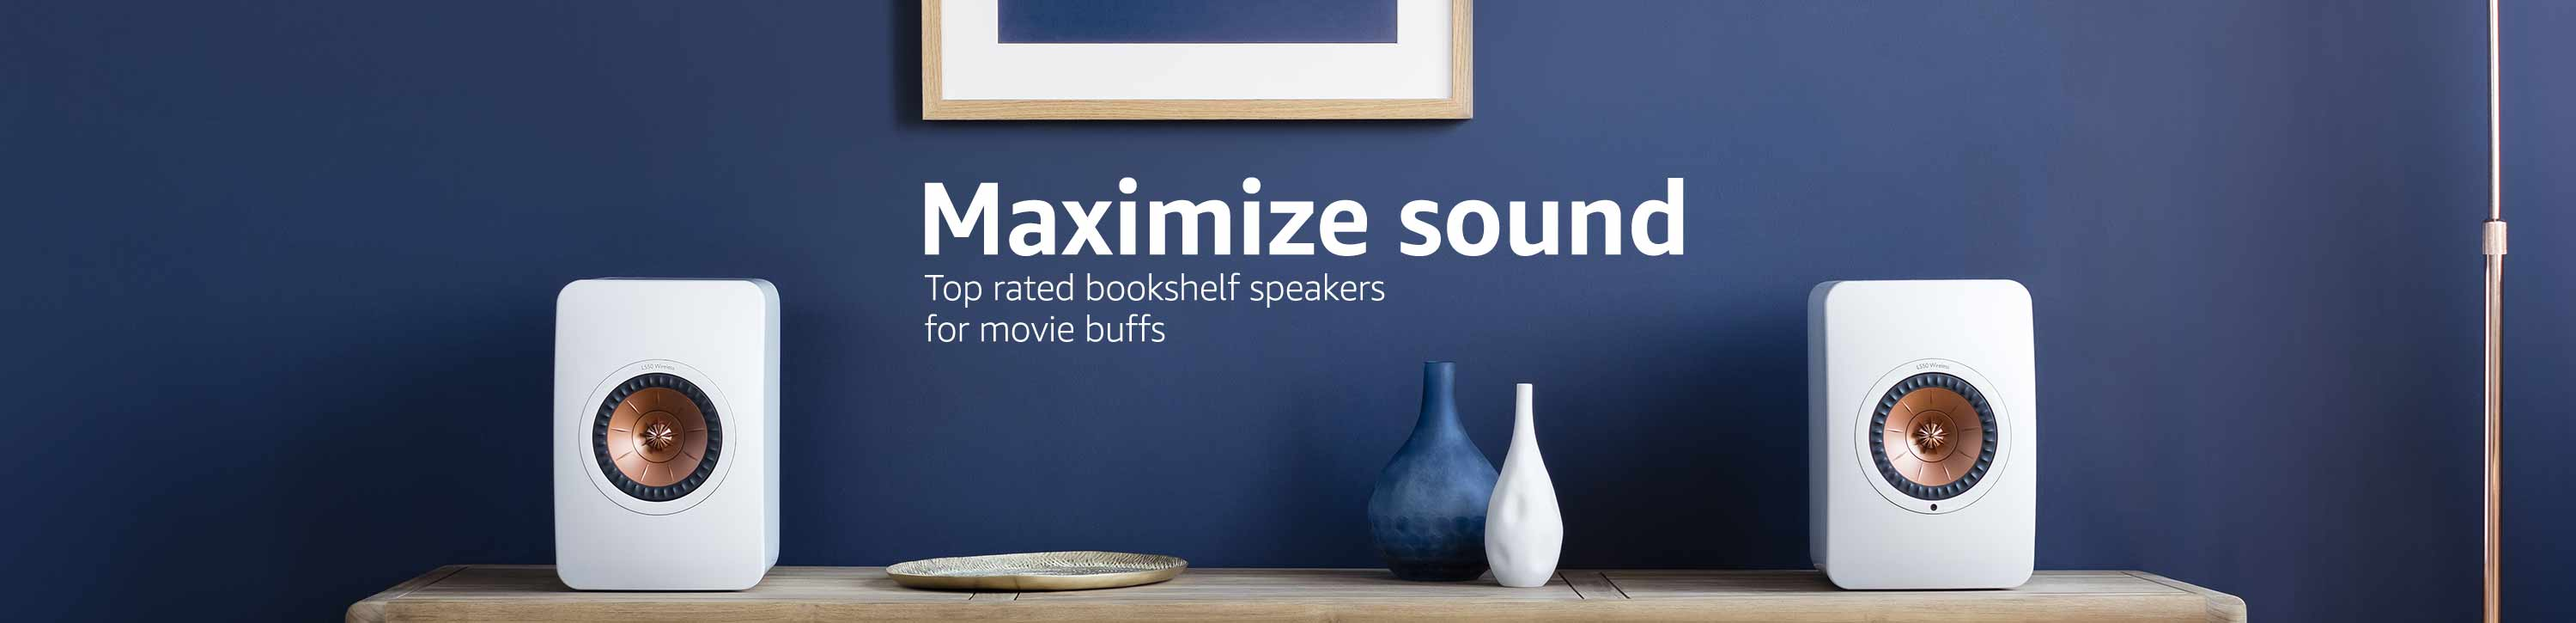 Top rated Bookshelf speakers